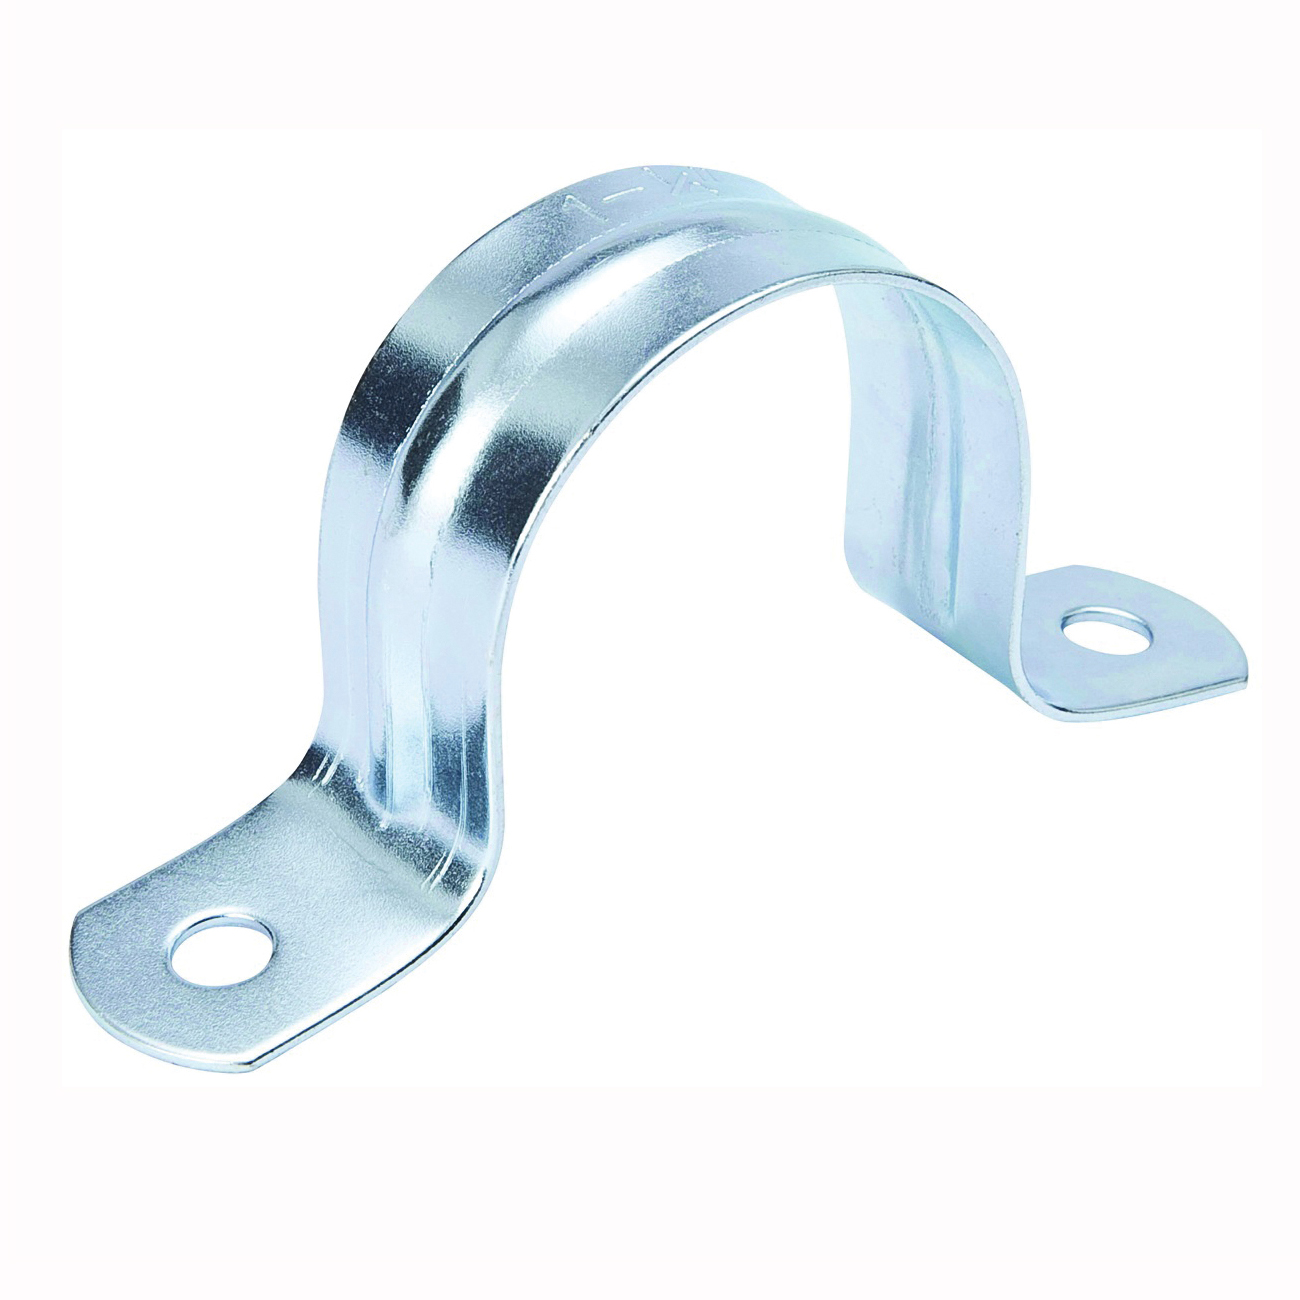 Picture of B & K G13-075HC Pipe Strap, 3/4 in Opening, Galvanized Steel, 25